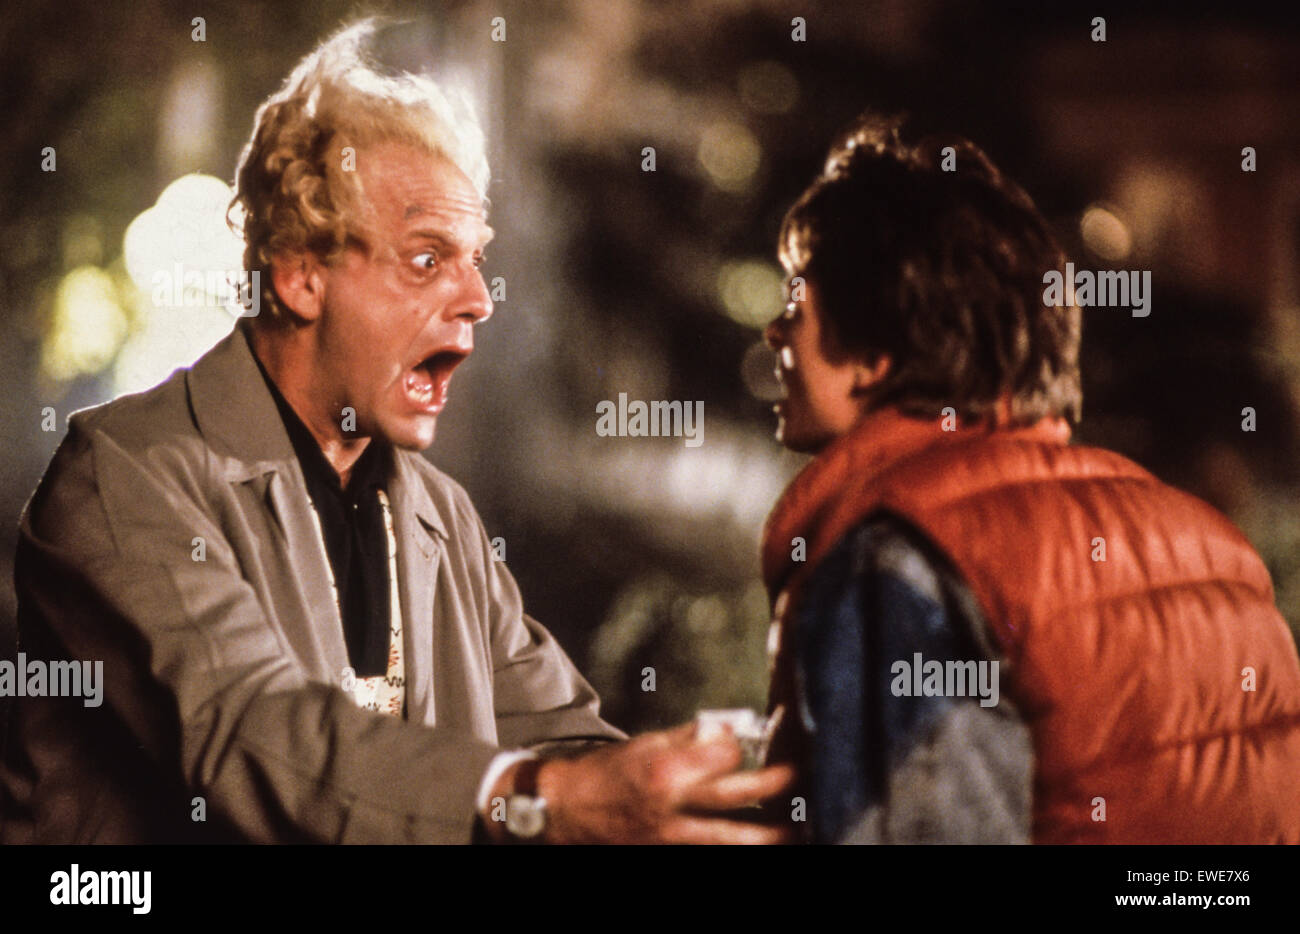 back to the future, 1985 - Stock Image